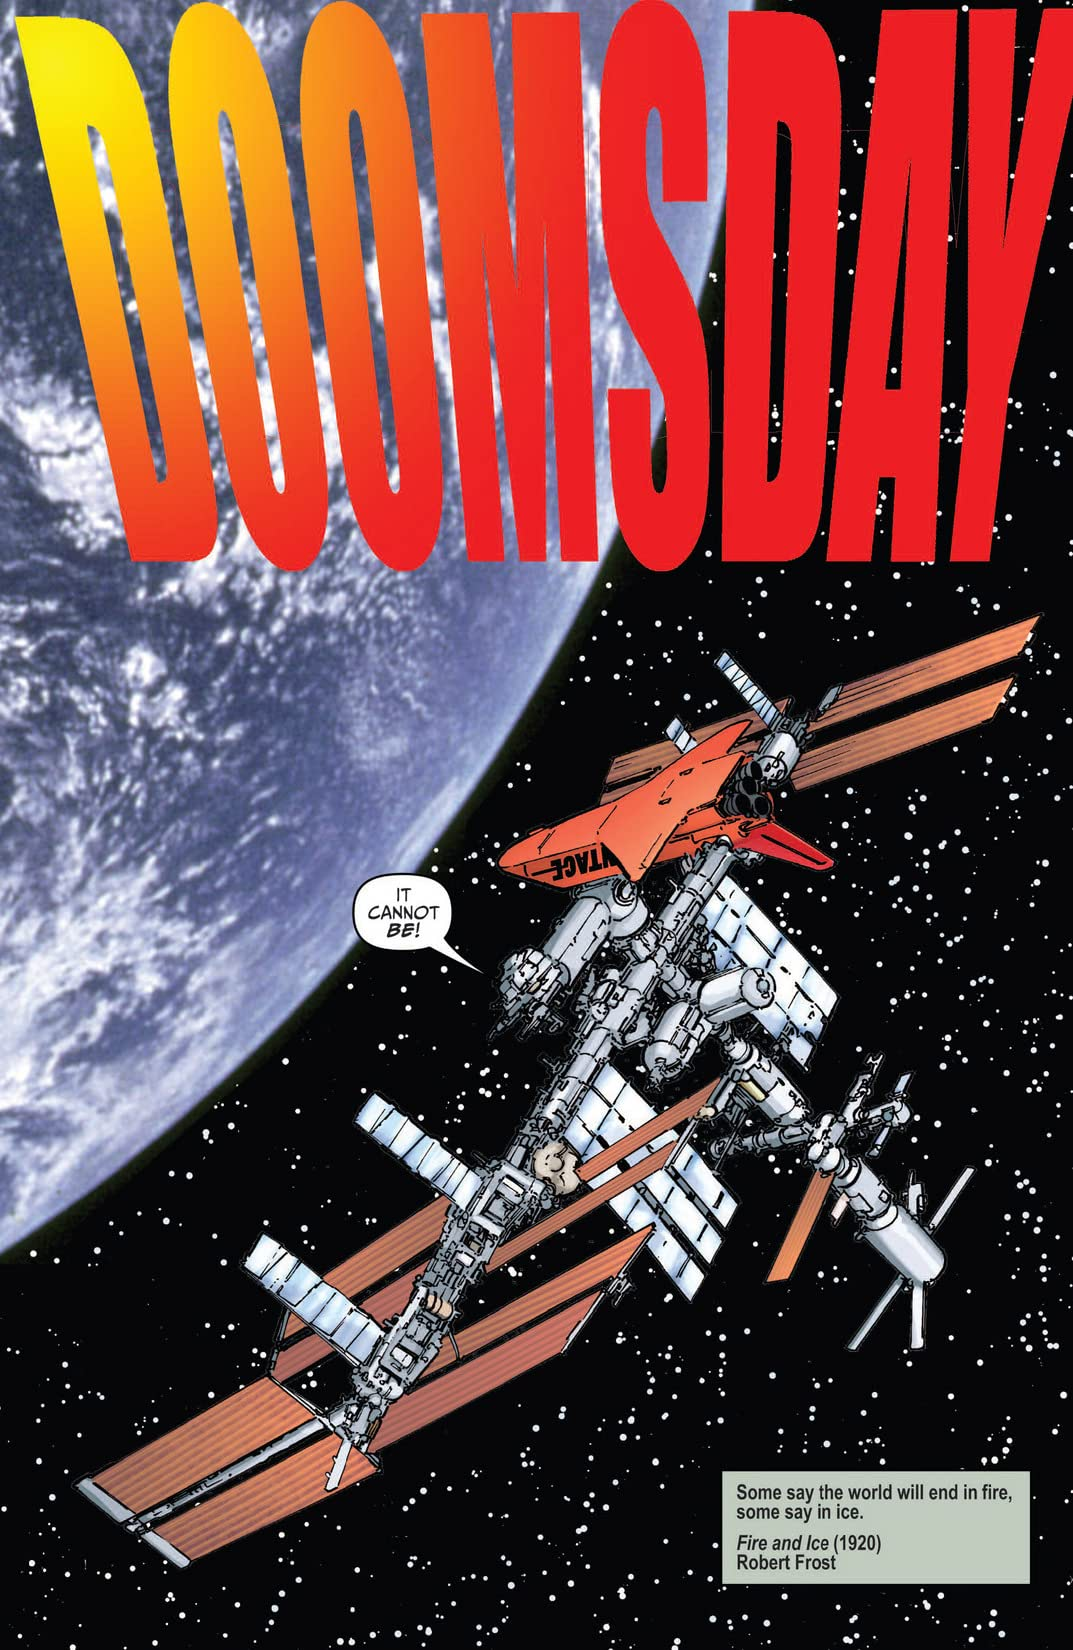 Doomsday.1 #1 (of 4)